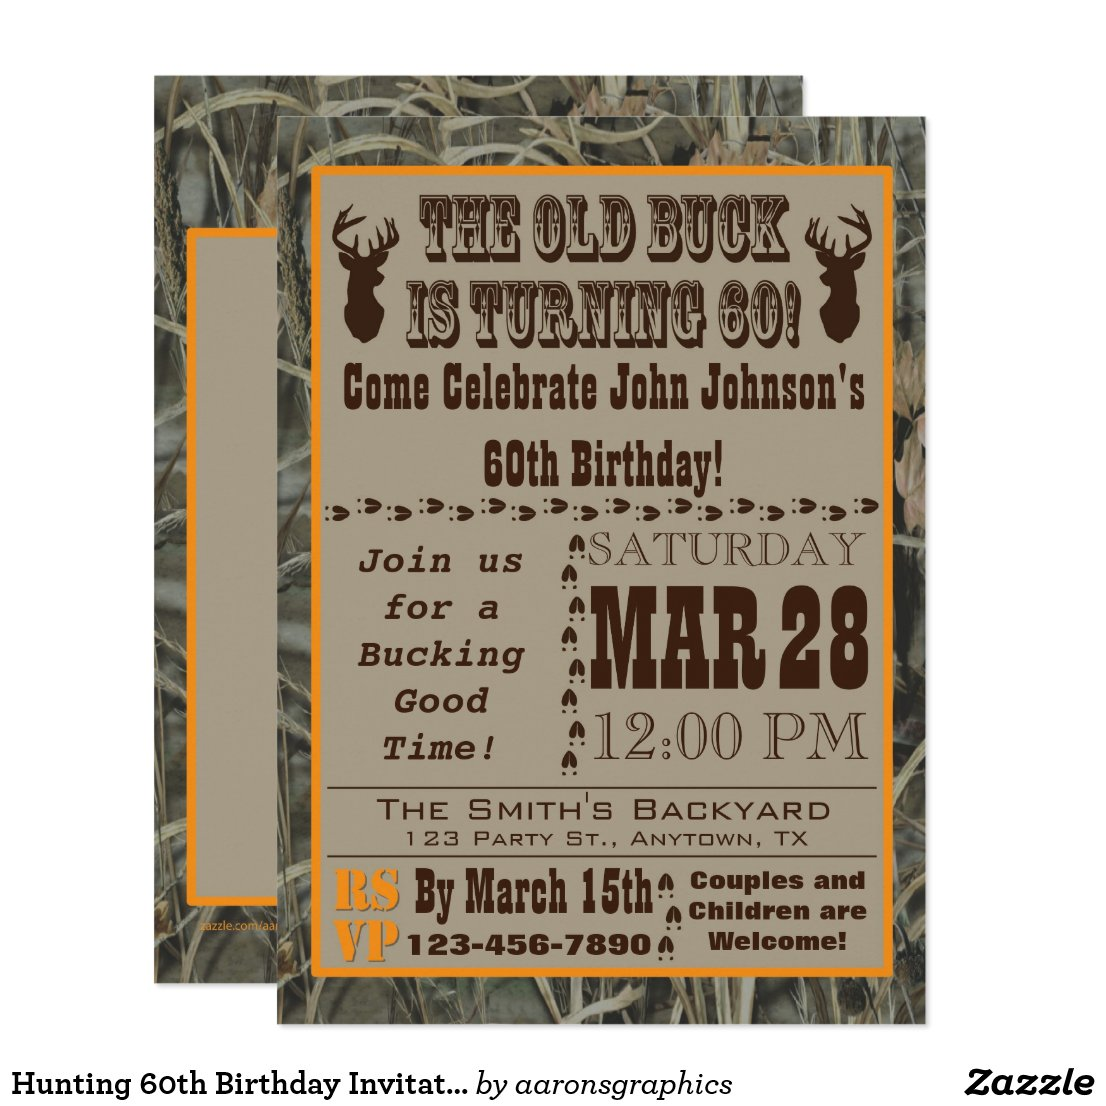 Hunting 60th Birthday Invitation with Camo